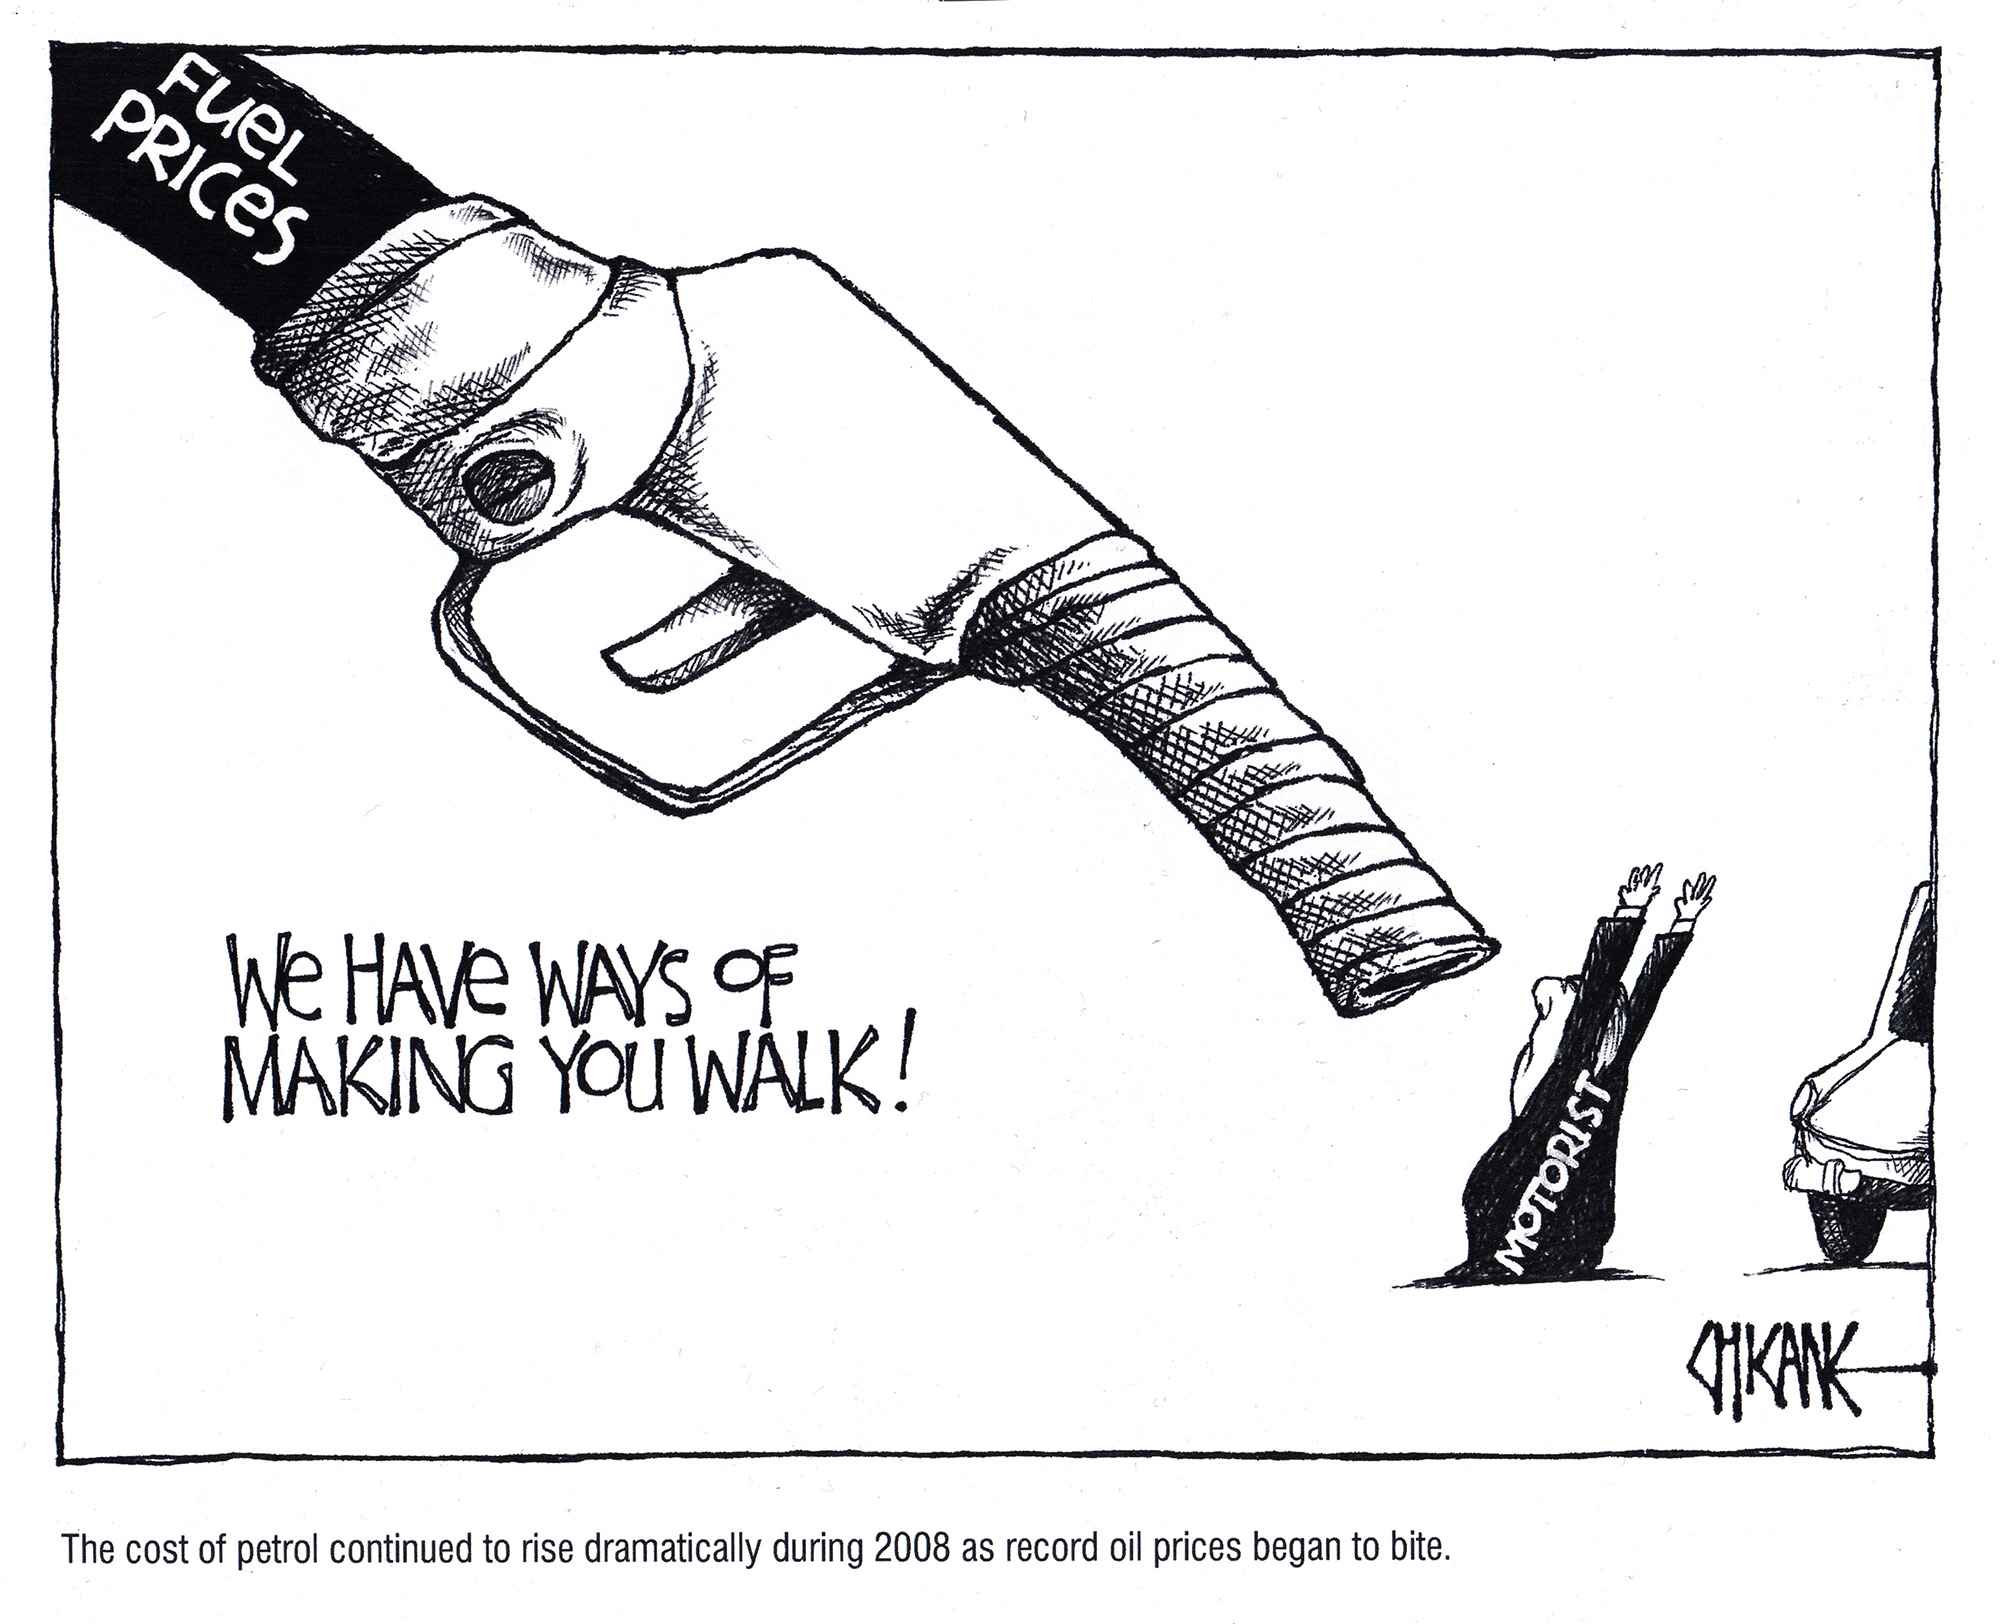 We have ways of making your walk. Fuel prices cartoon by Chicane